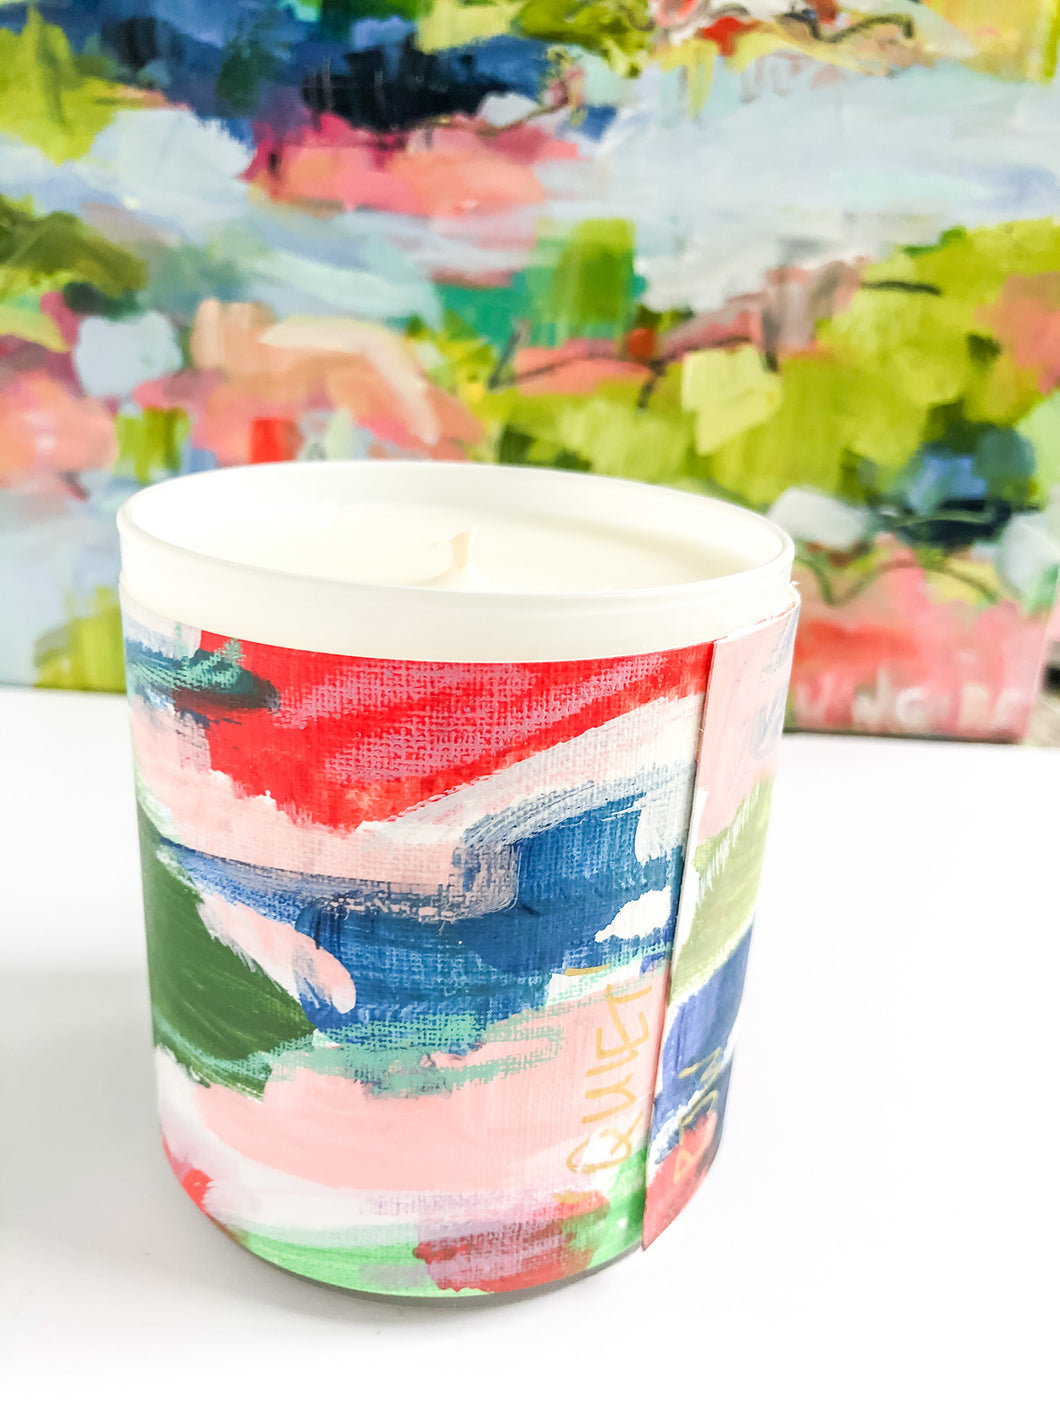 ORIGINAL FINE ART WRAPPED CANDLE: FOUR